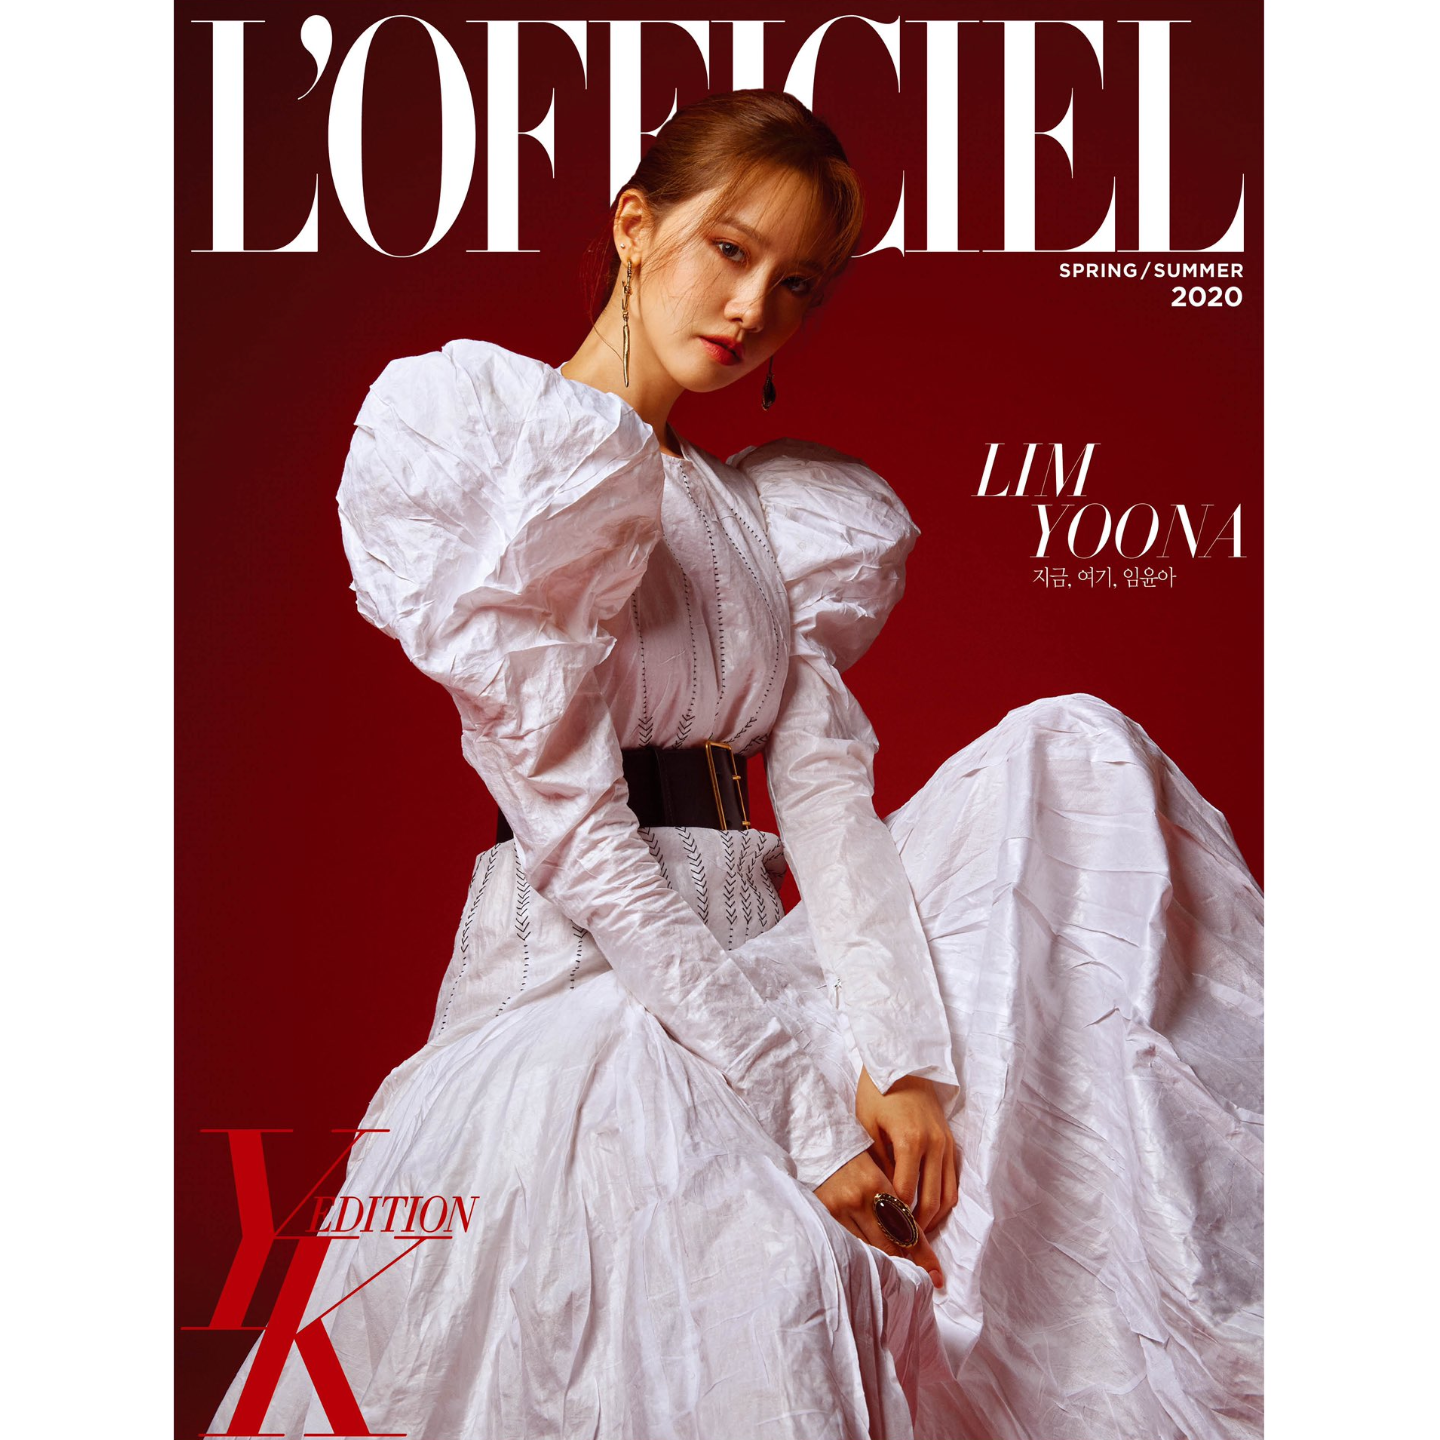 LOFFICIEL Spring and Summer 2020 issue